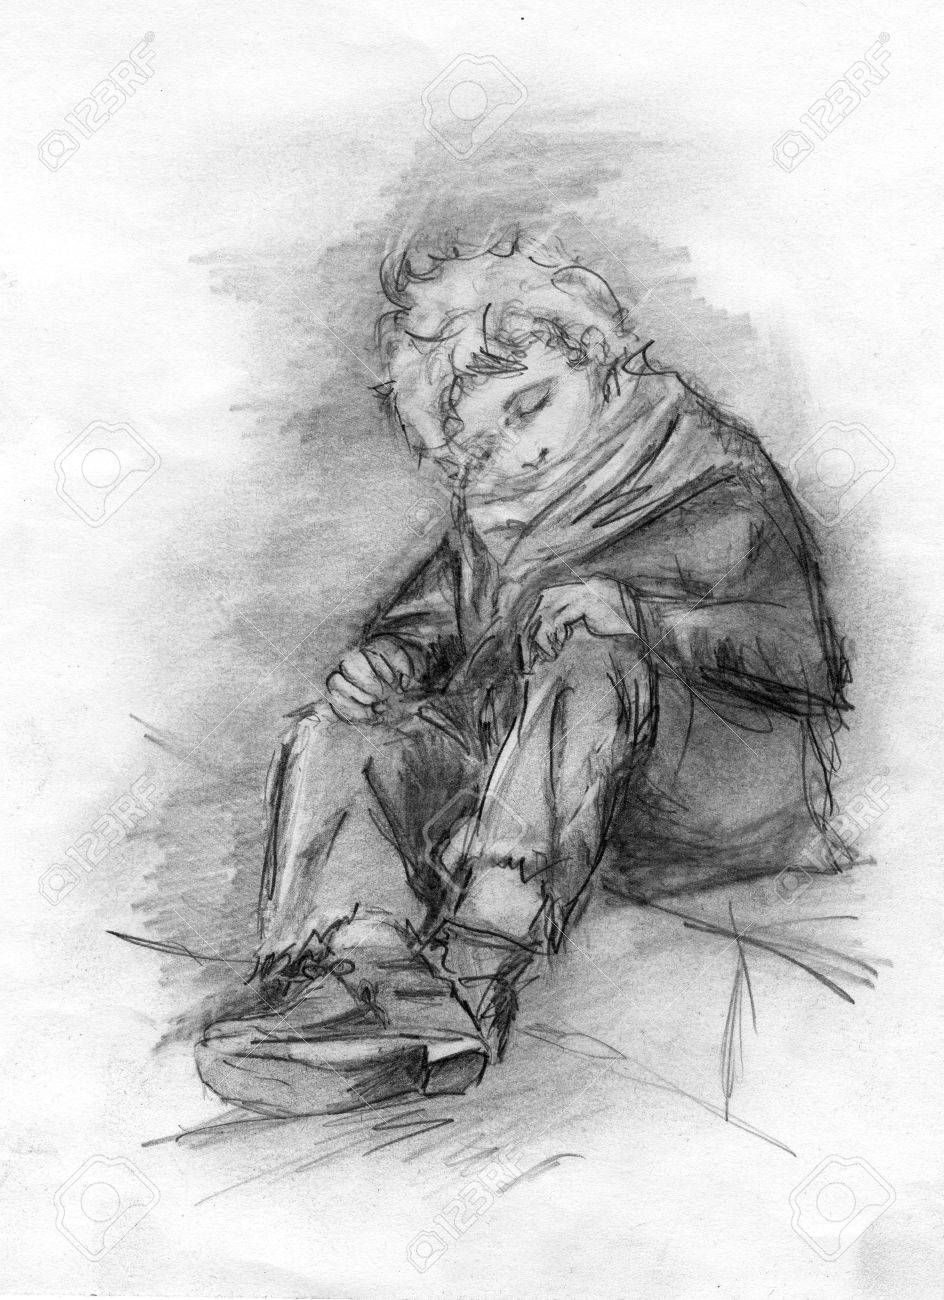 Image homeless sleeping boy pencil drawing stock photo 59358888